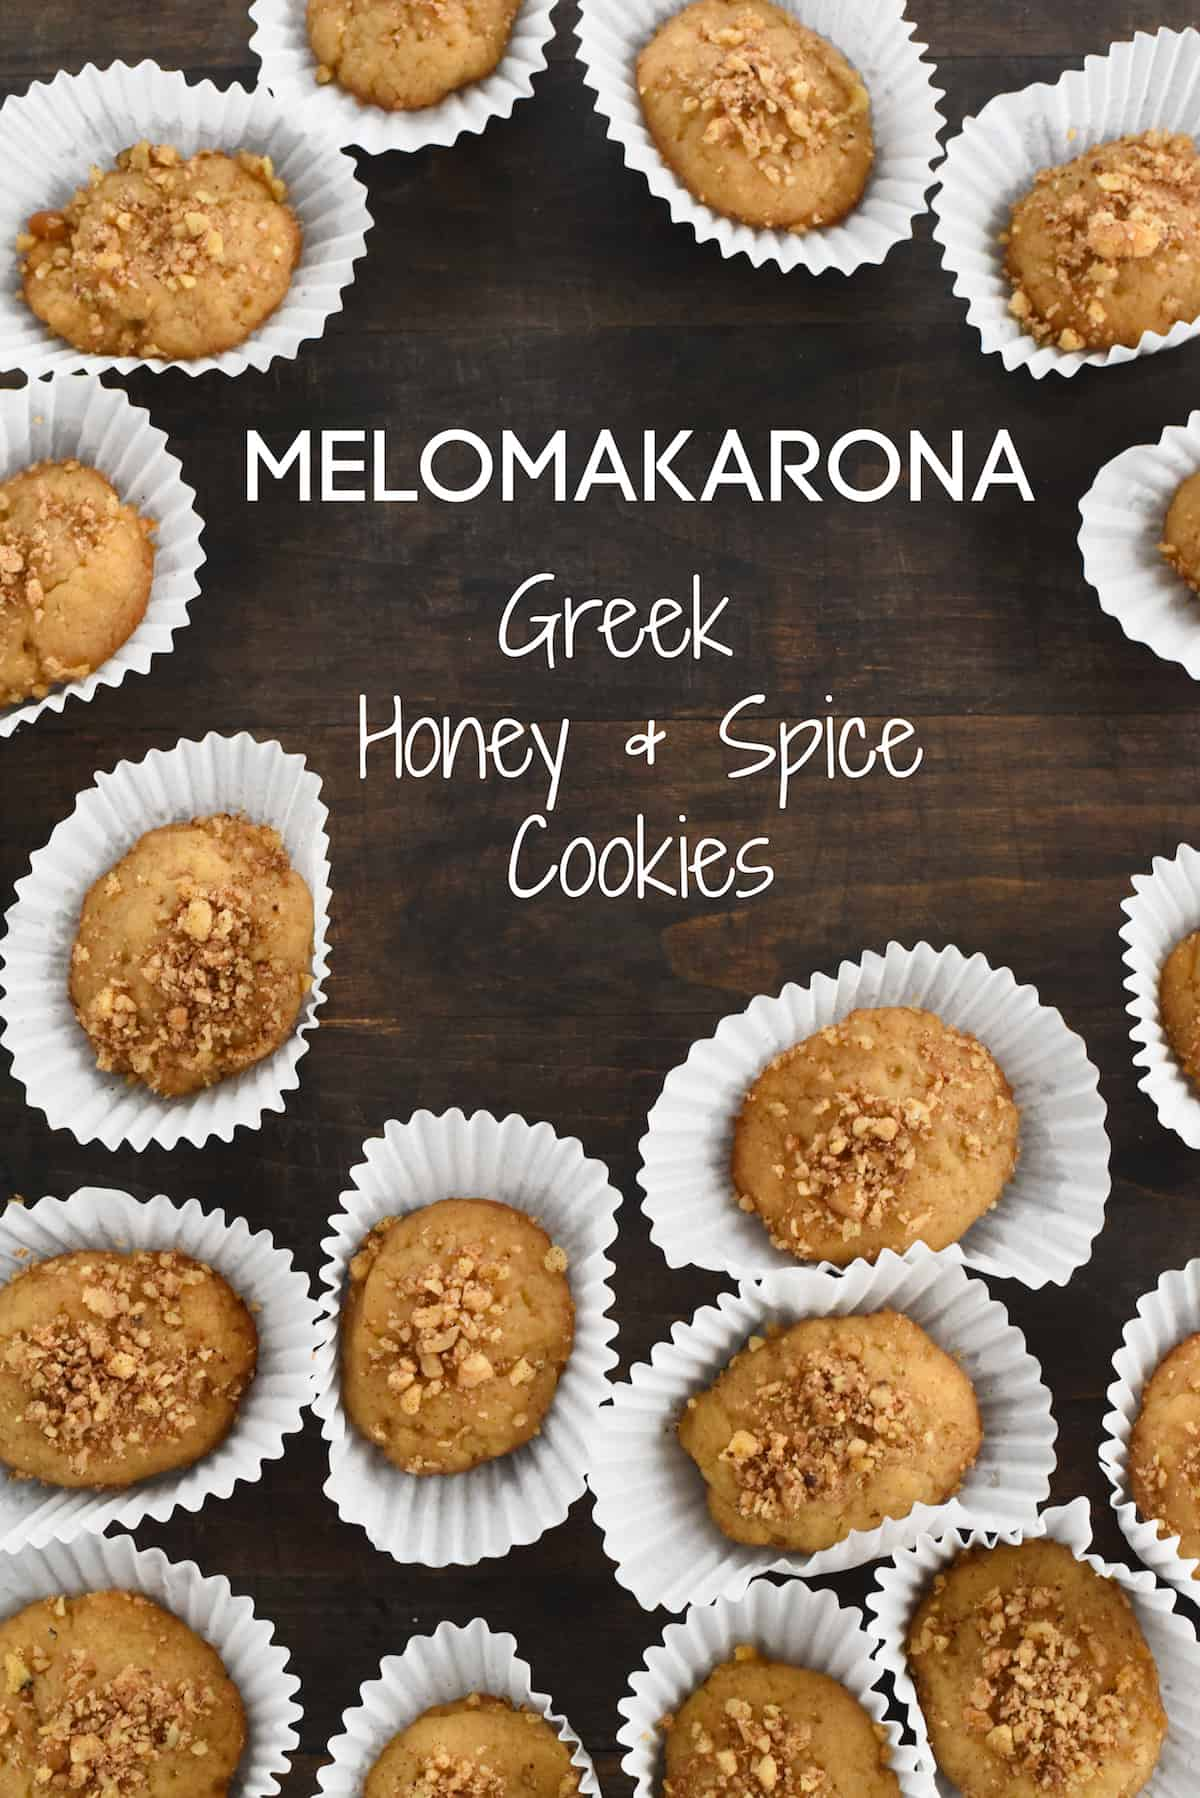 This Melomakarona recipe creates a large batch of Greek Honey & Spice Cookies. Flavored with walnut, spices, orange and honey, these amazing cookies stay fresh up to two weeks! | foxeslovelemons.com